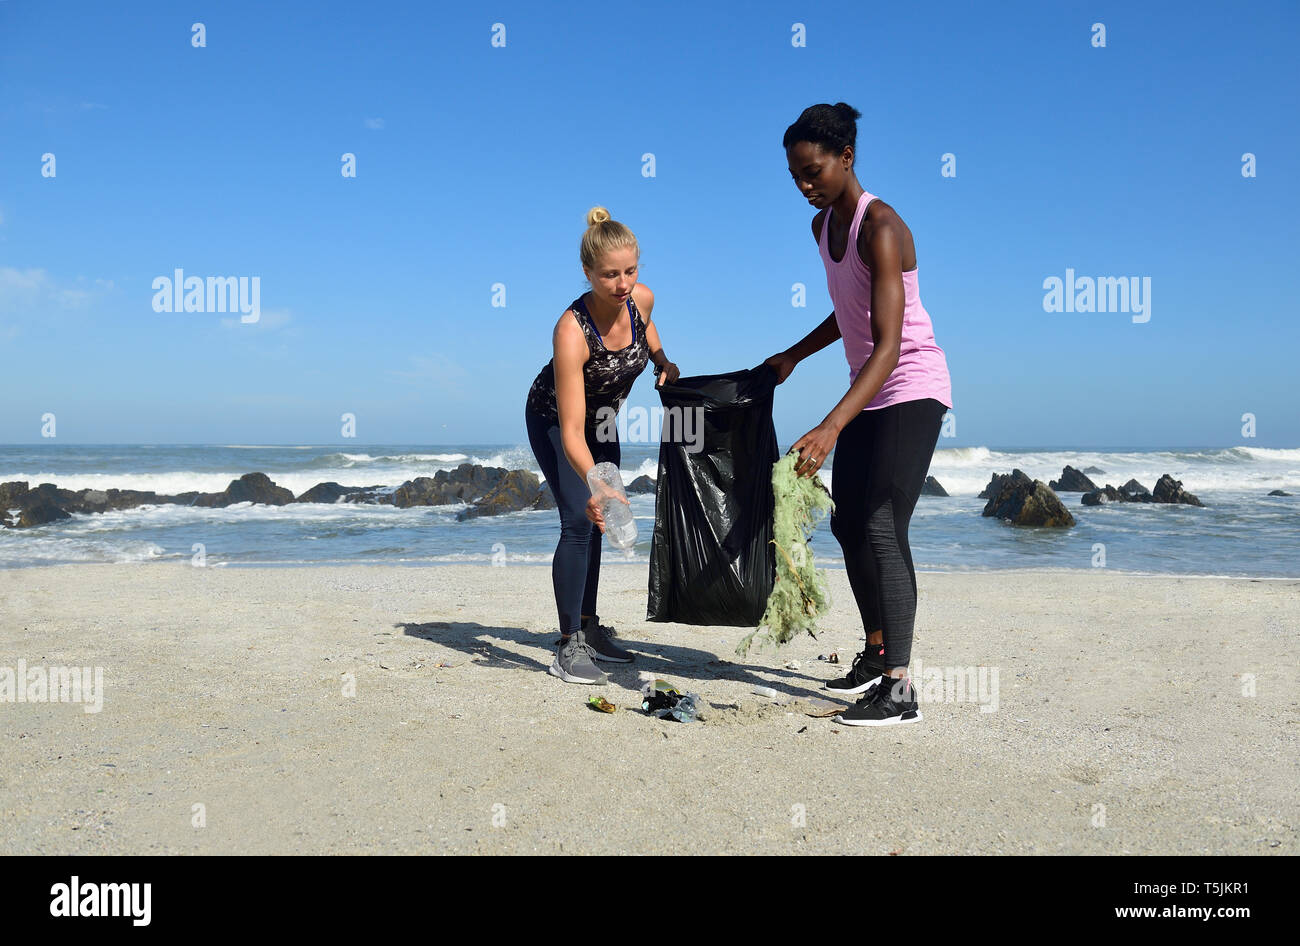 Two women cleaning the beach from plastic waste - Stock Image